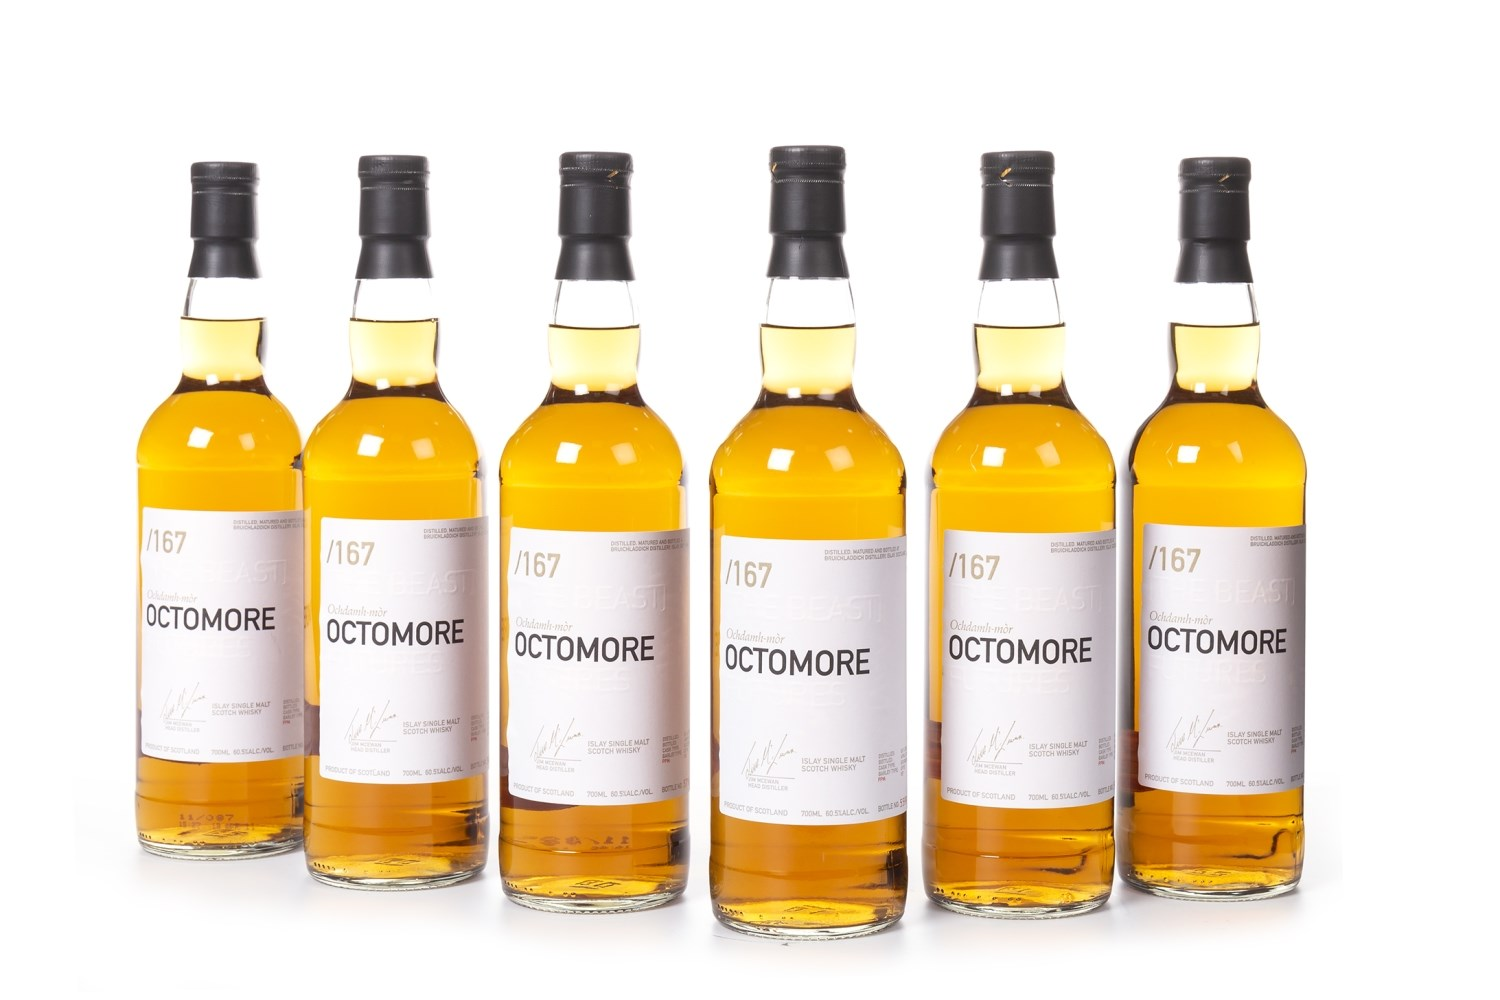 Lot 1005 - SIX BOTTLES OF OCTOMORE 2004 FUTURES 'THE BEAST'